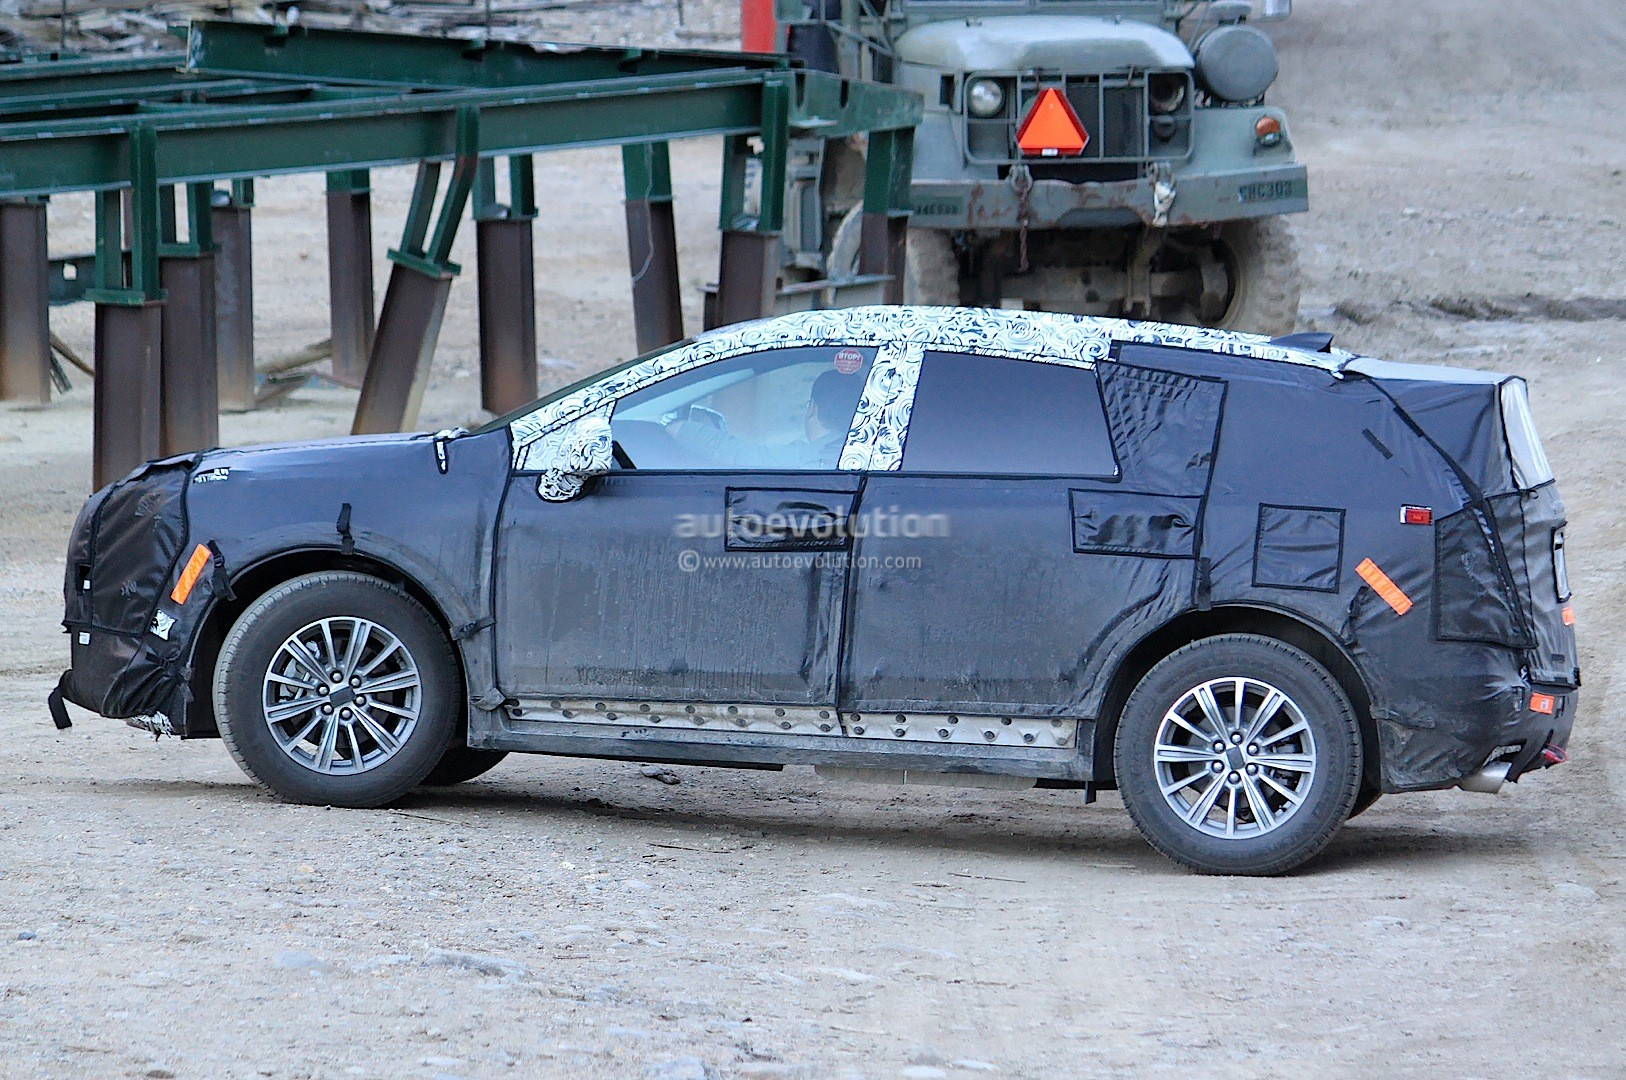 Cadillac Xt5 Confirmed To Debut In Early 2016 Autoevolution